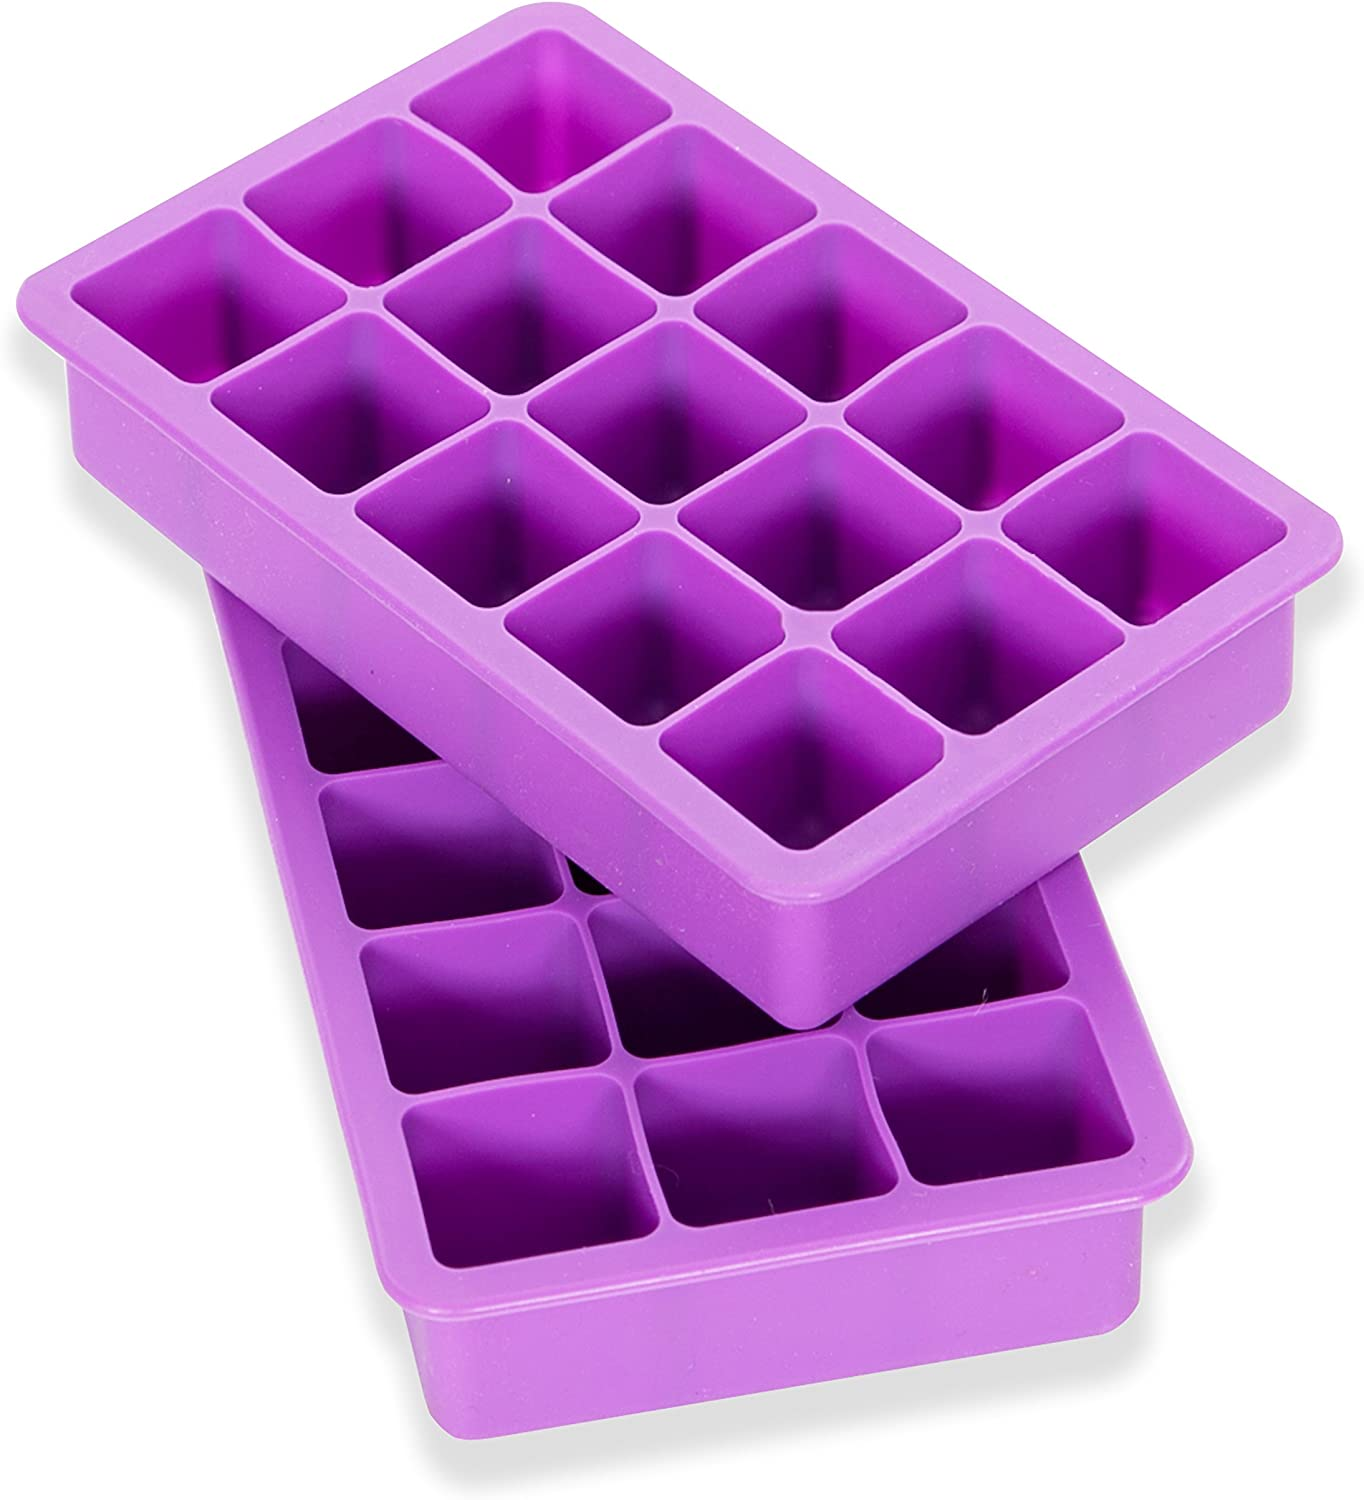 Elbee Home EBH-613 Elbee 613 Coolest 15 Silicone Ice Tray-2-Piece Mold Set